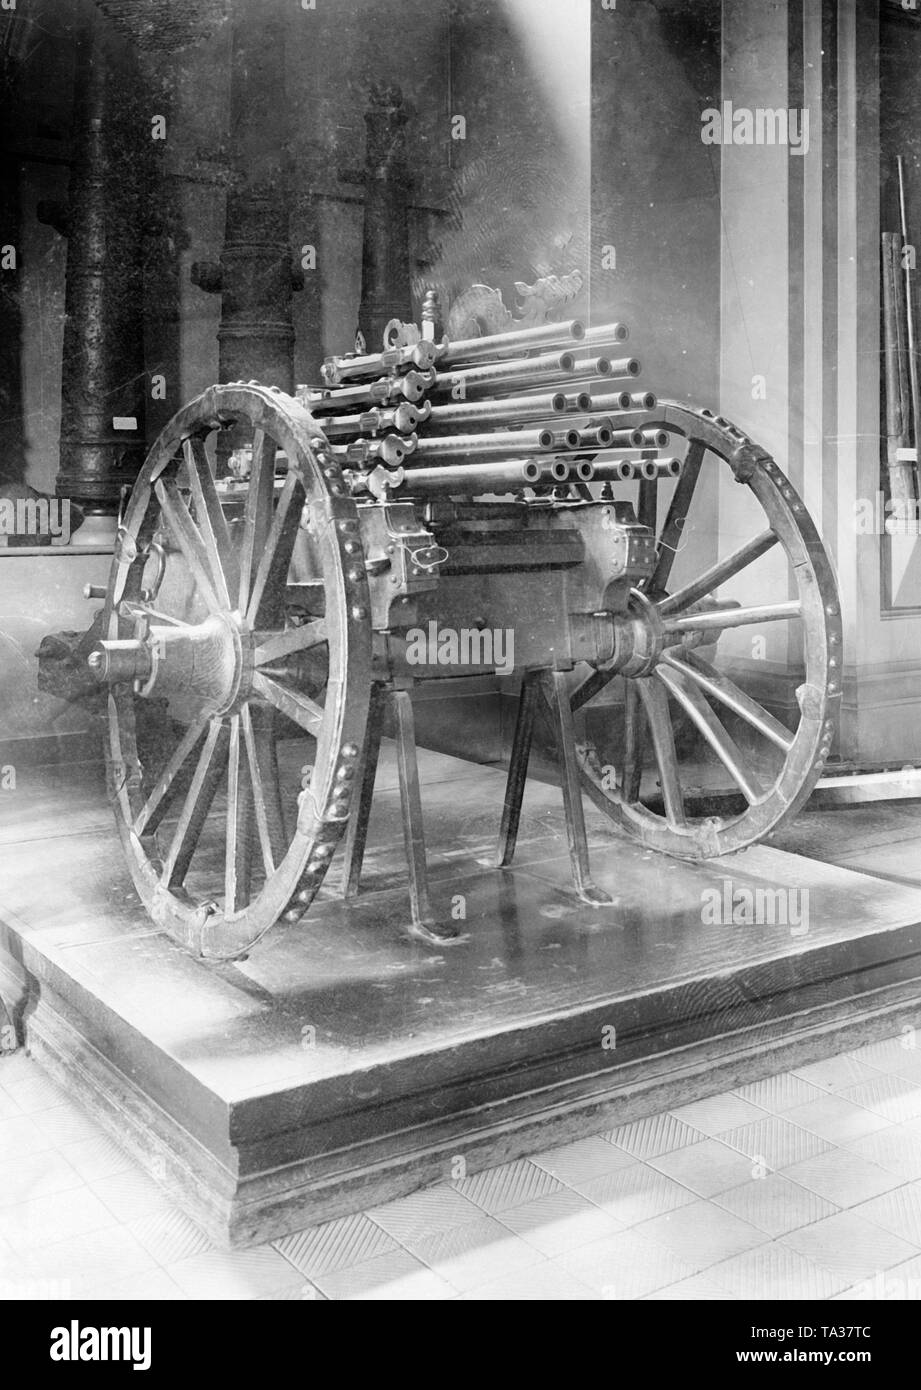 This organ gun was built by the imperial  gun founder and kitman of Vienna, Daniel Kollmann, in 1678. The gun is divided into three sections and two superimposed layers with a total of 50 musket barrels, which were loaded with prefabricated cartridges. Its total weight is 180 kg. The gun is now in Hall I of the Museum of Military History in Vienna and is accessible to the public. - Stock Image